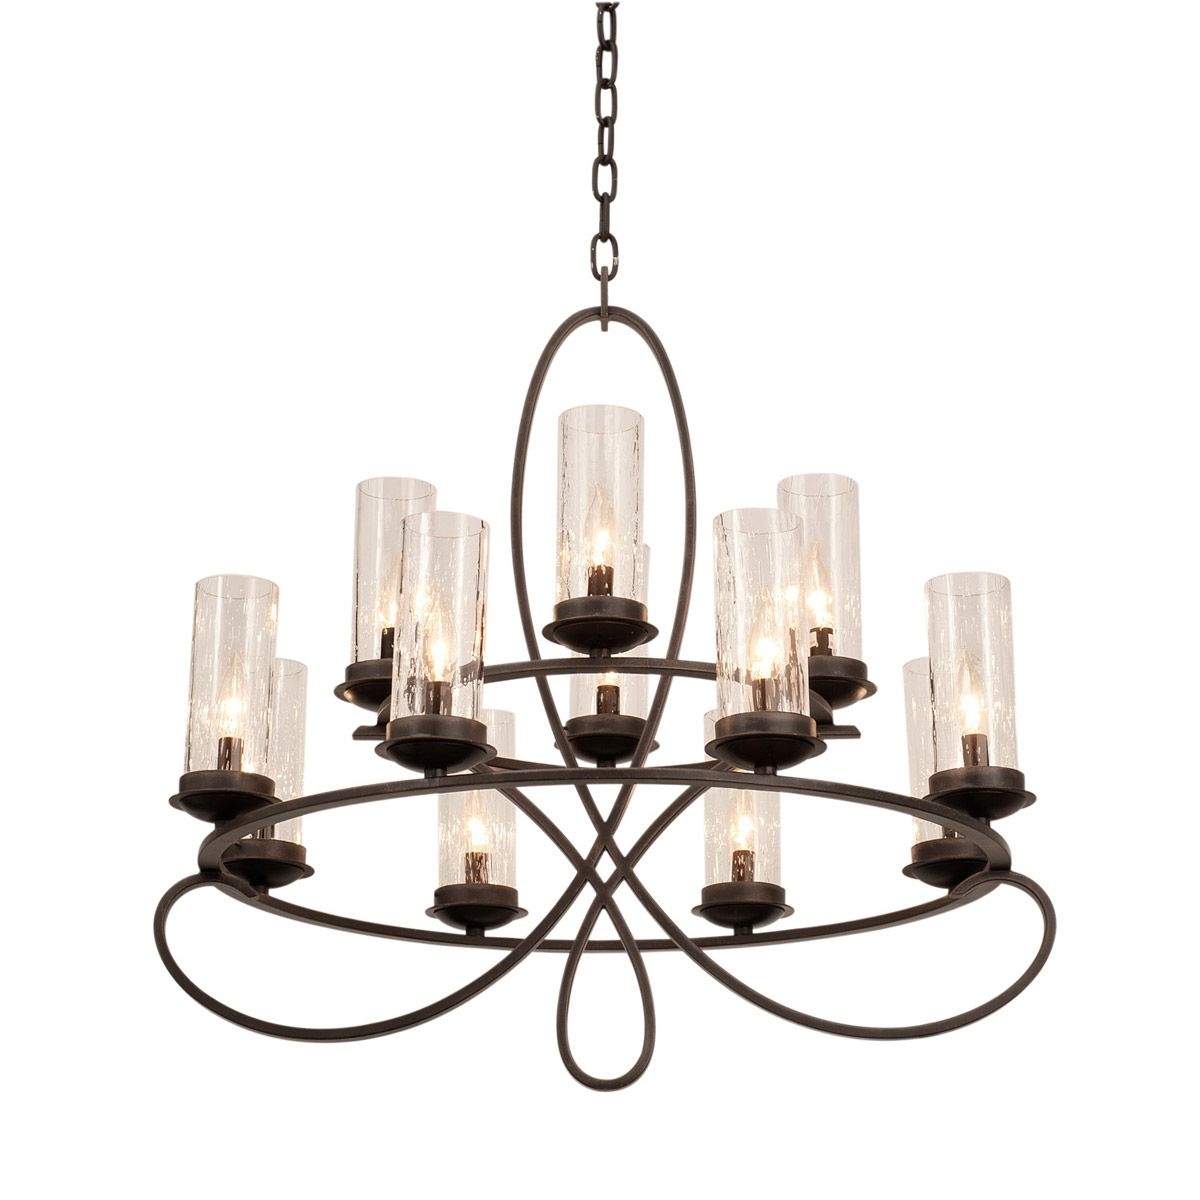 Kalco lighting grayson 12 light chandelier in heirloom bronze 2675hb 1100 at lighting new york